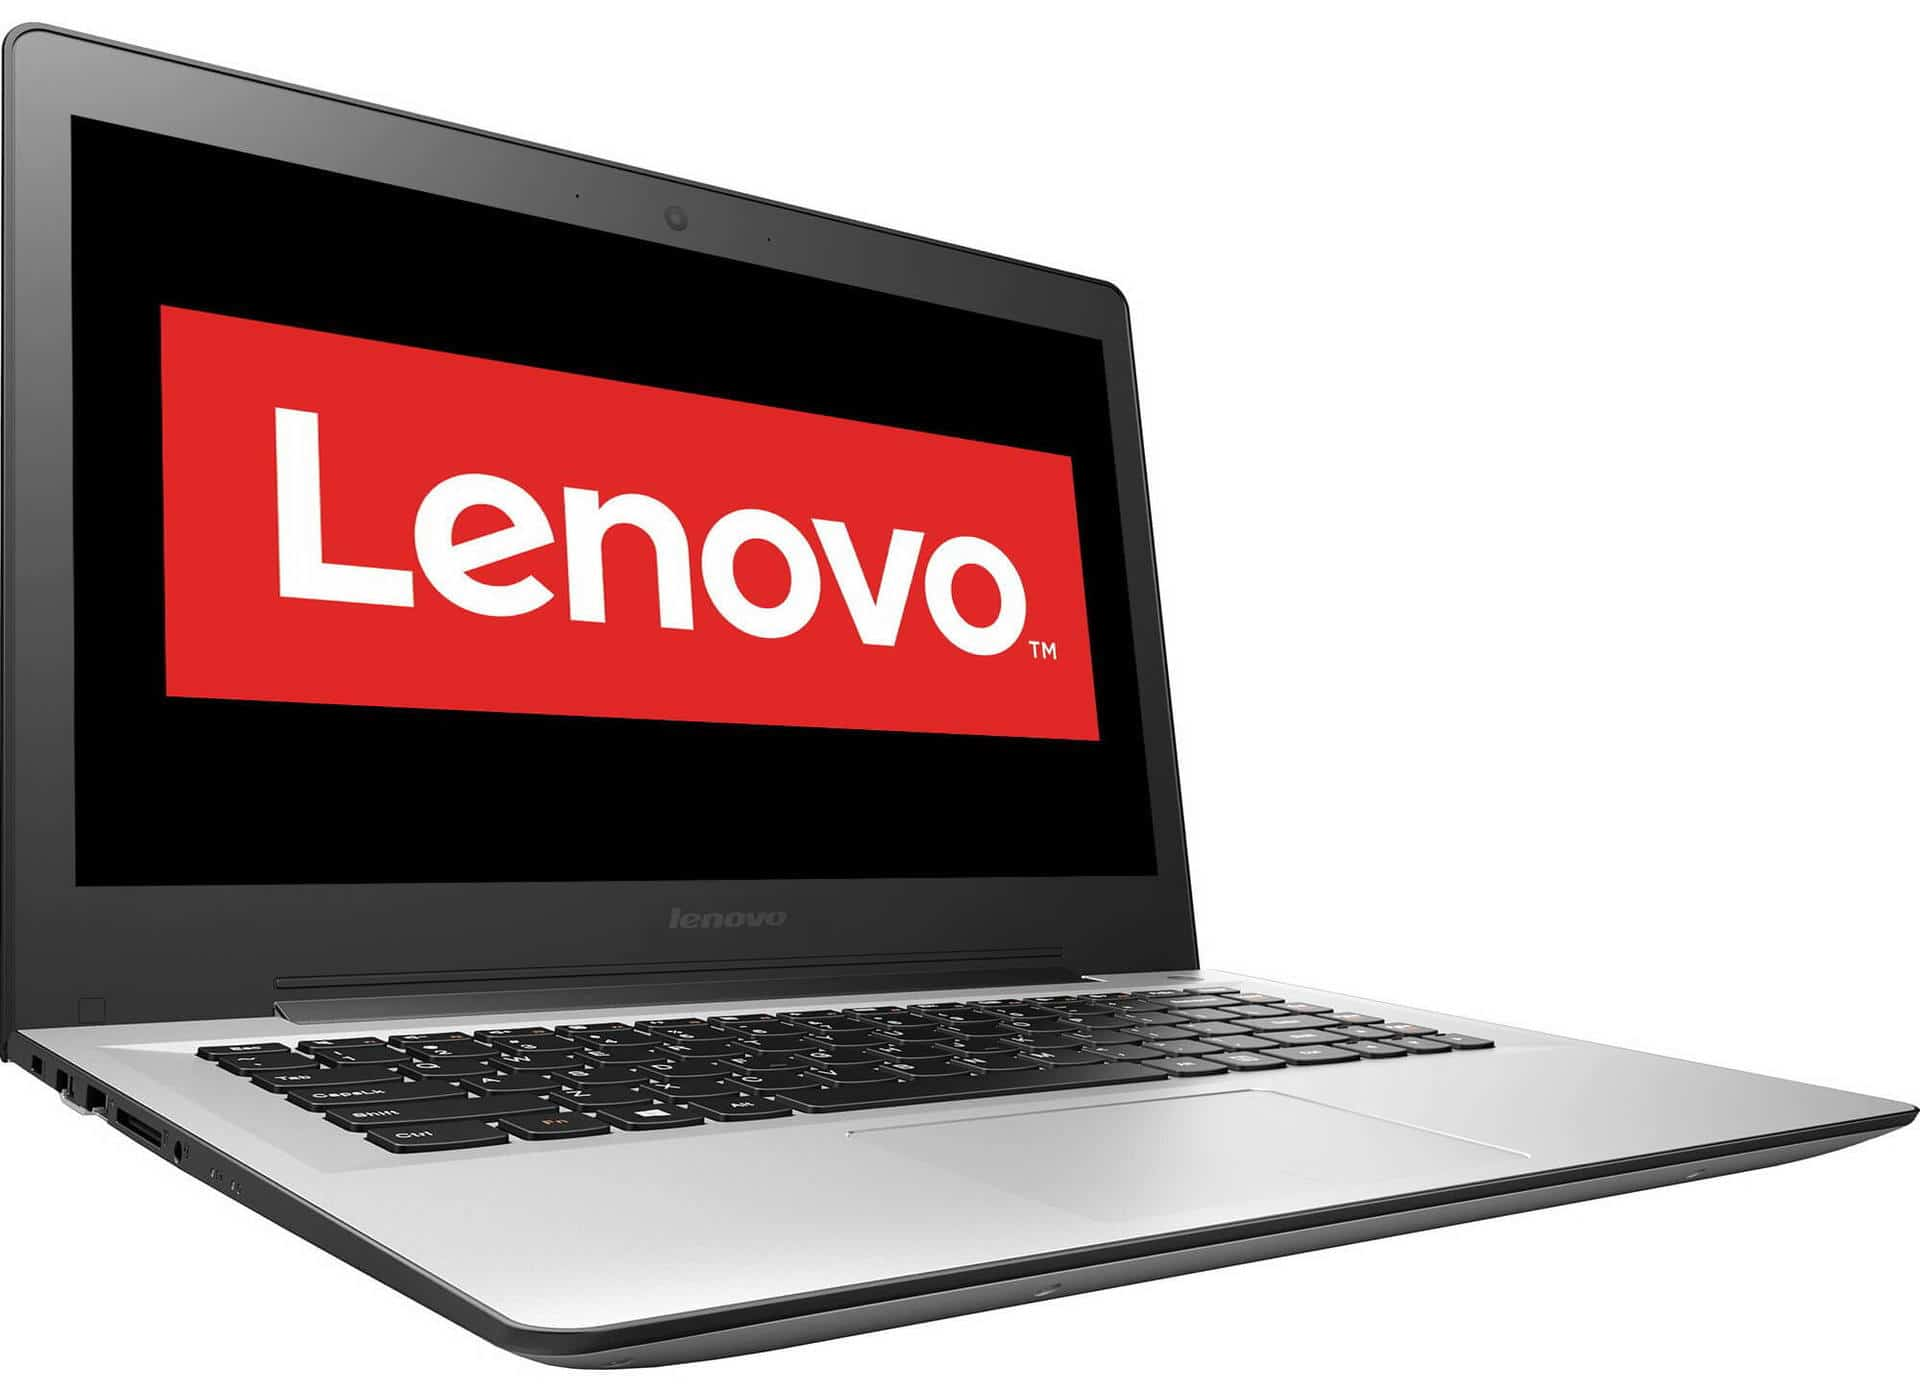 Lenovo IdeaPad 500S-14 - laptop ultraportabil si performant de 14 inch!